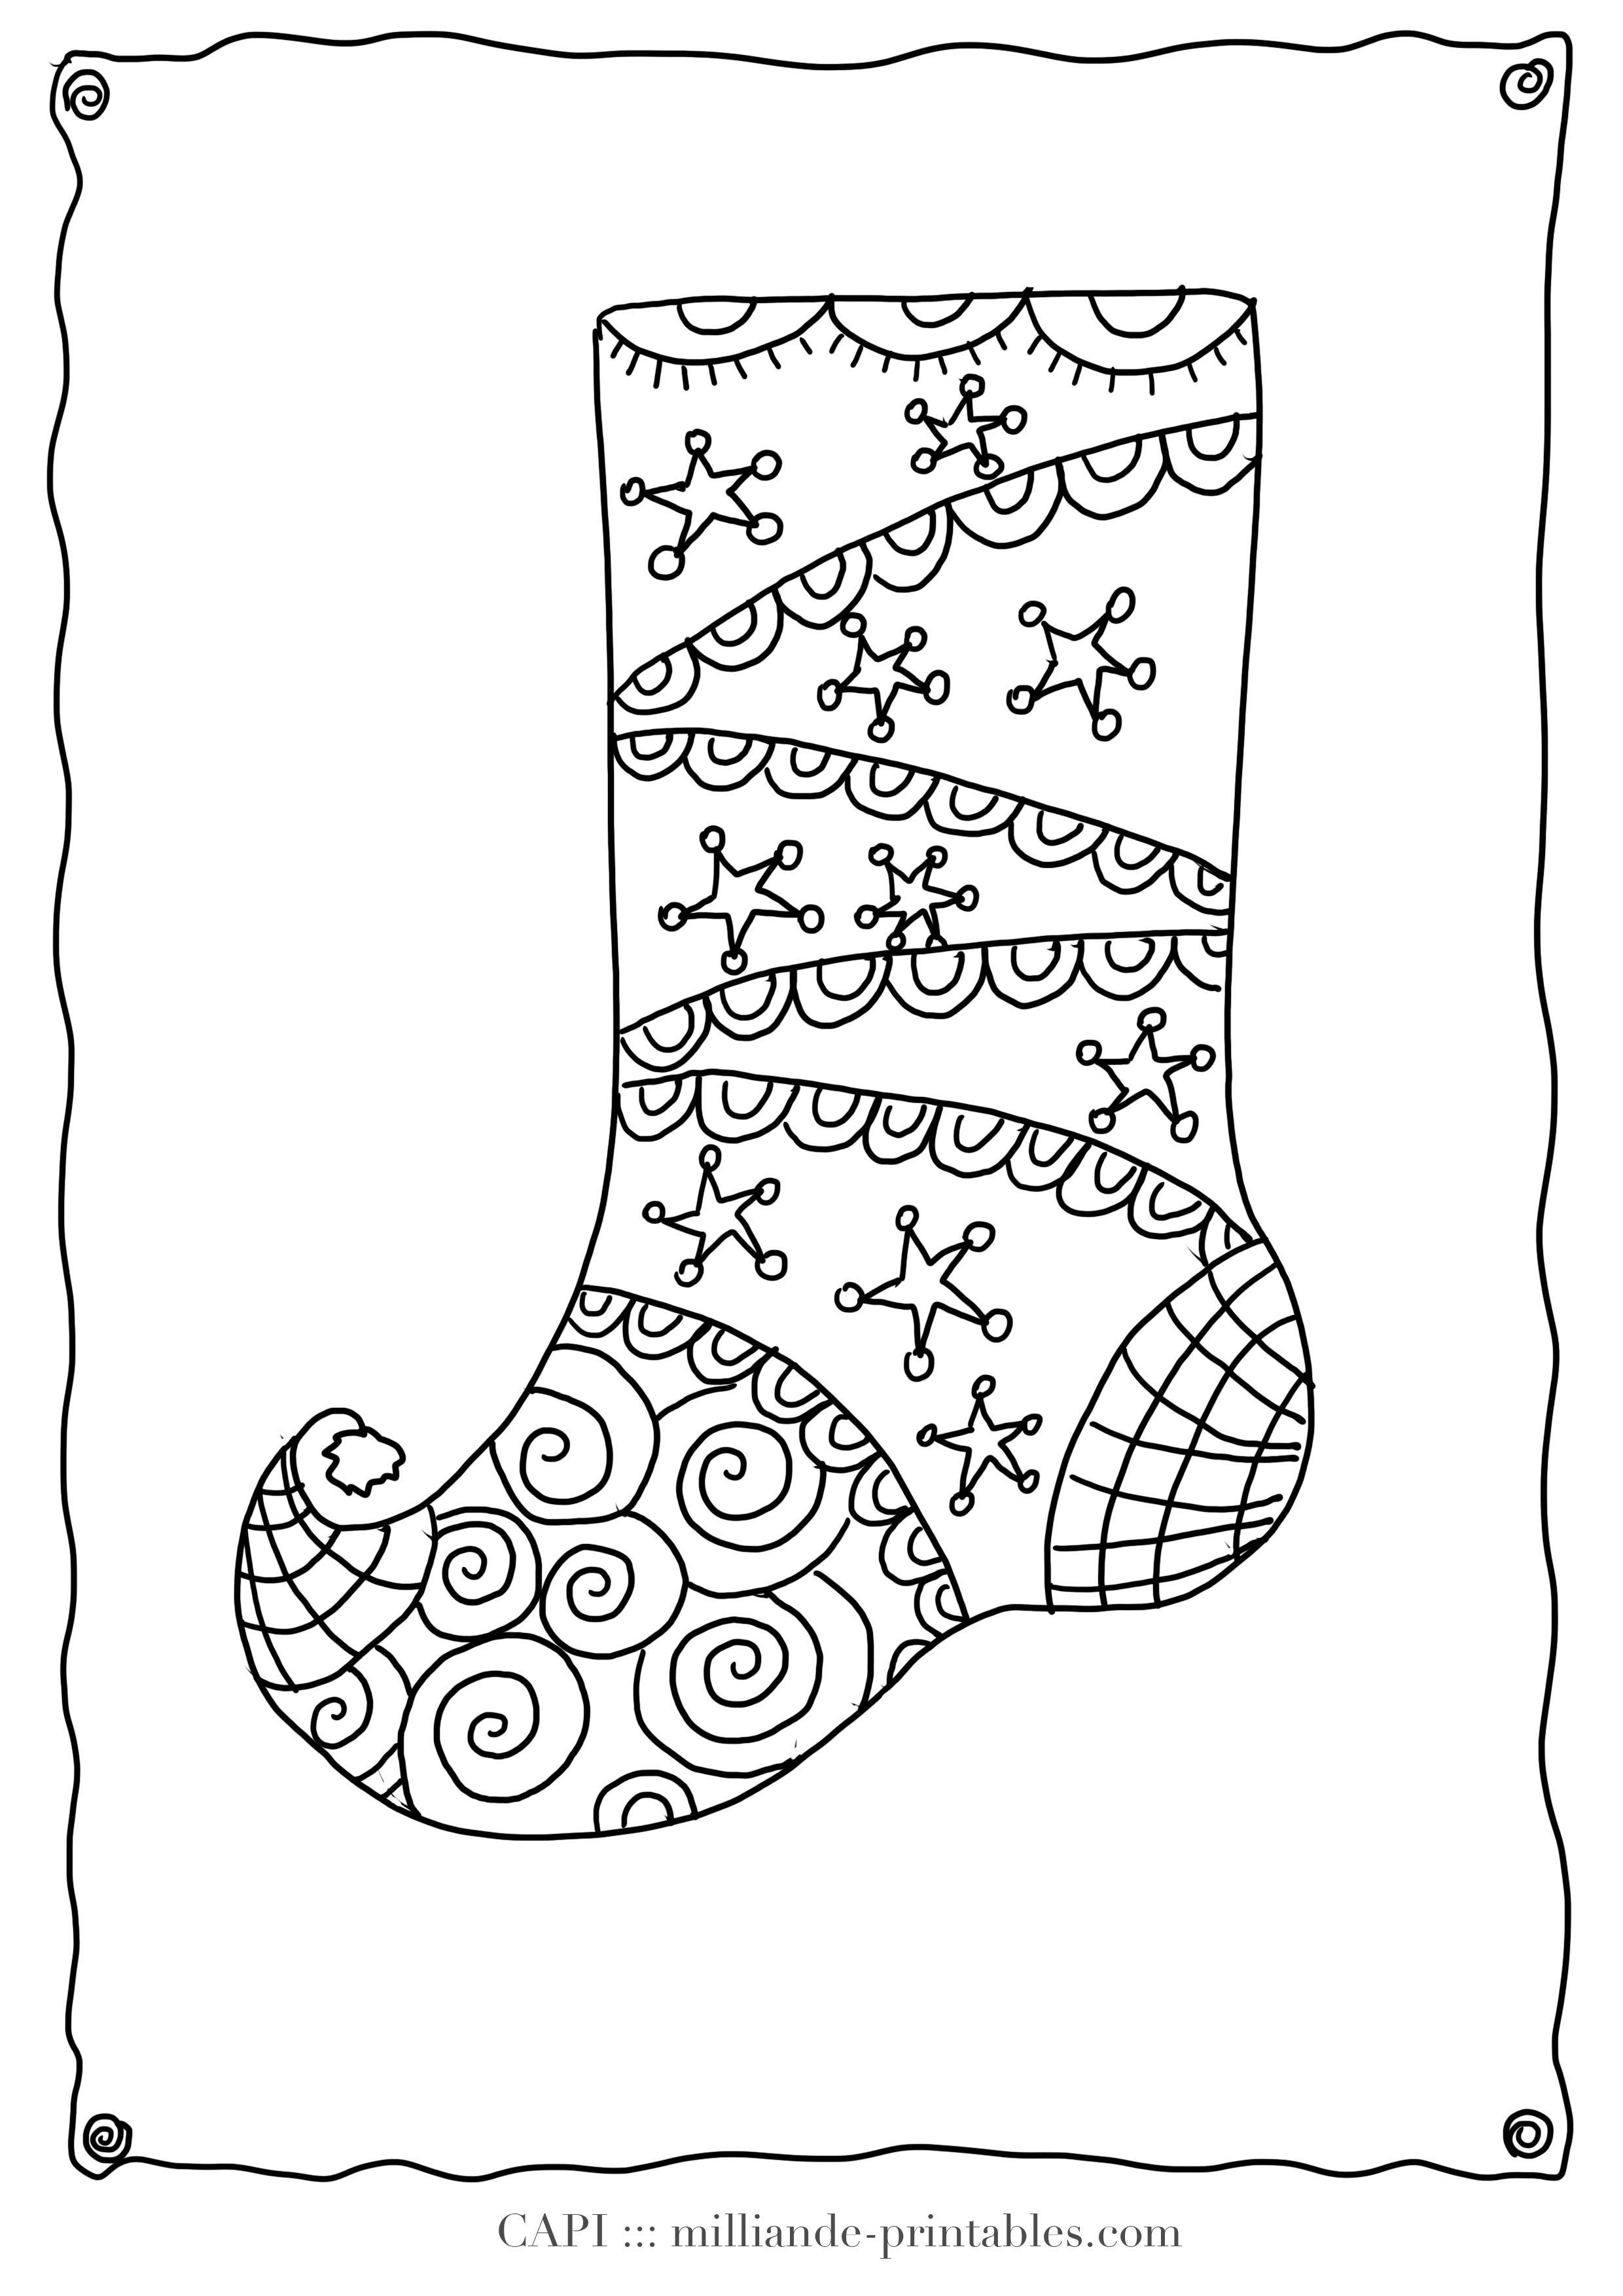 Christmas Coloring Page Stocking, Milliande's Free